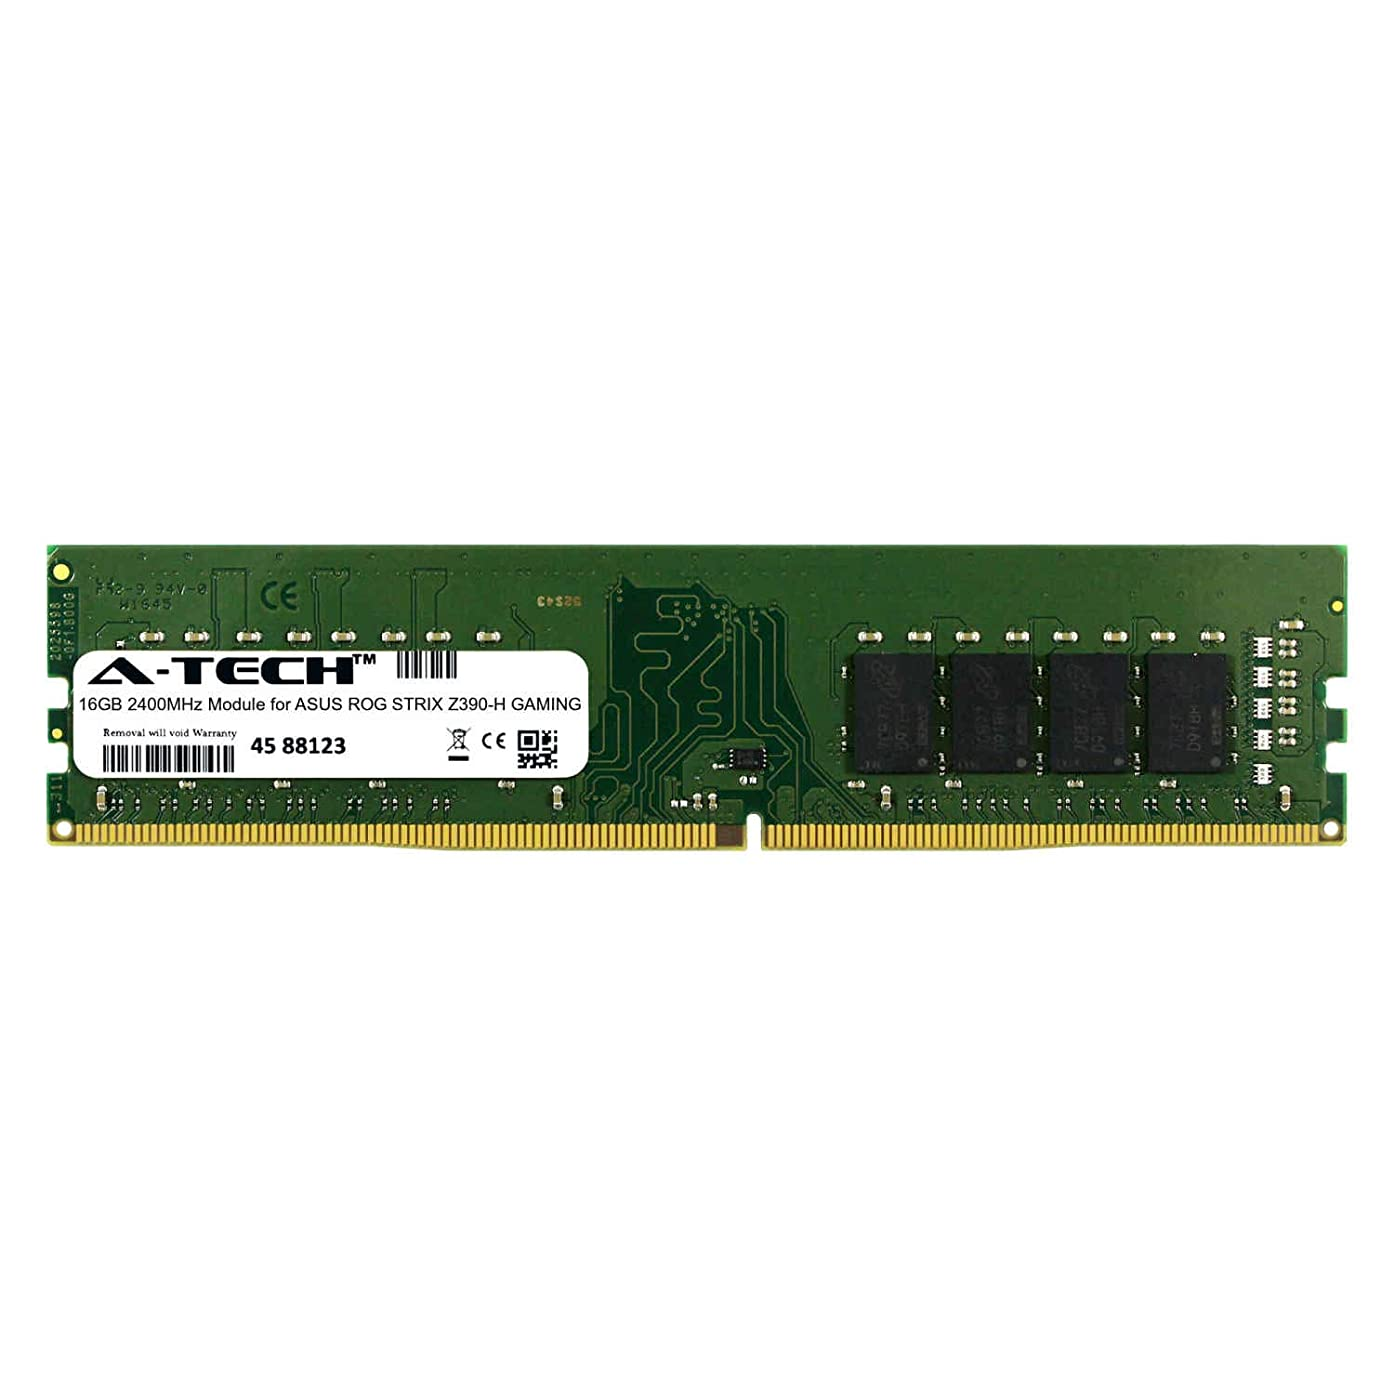 A-Tech 16GB Module for ASUS ROG Strix Z390-H Gaming Desktop & Workstation Motherboard Compatible DDR4 2400Mhz Memory Ram (ATMS394613A25822X1)